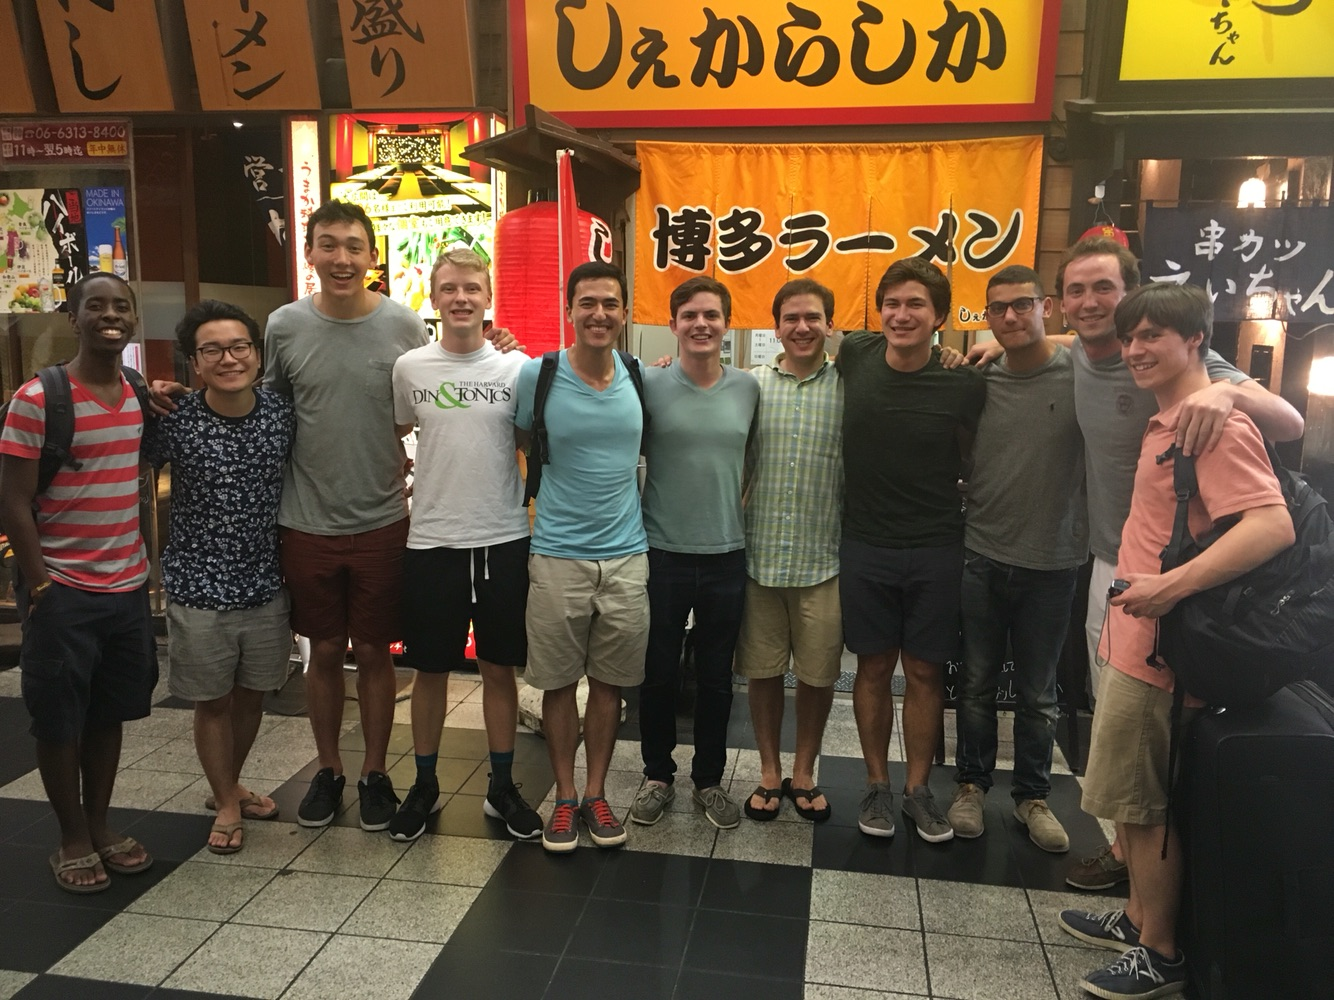 Dins at a fantastic southern-style ramen eatery on our first night in Osaka